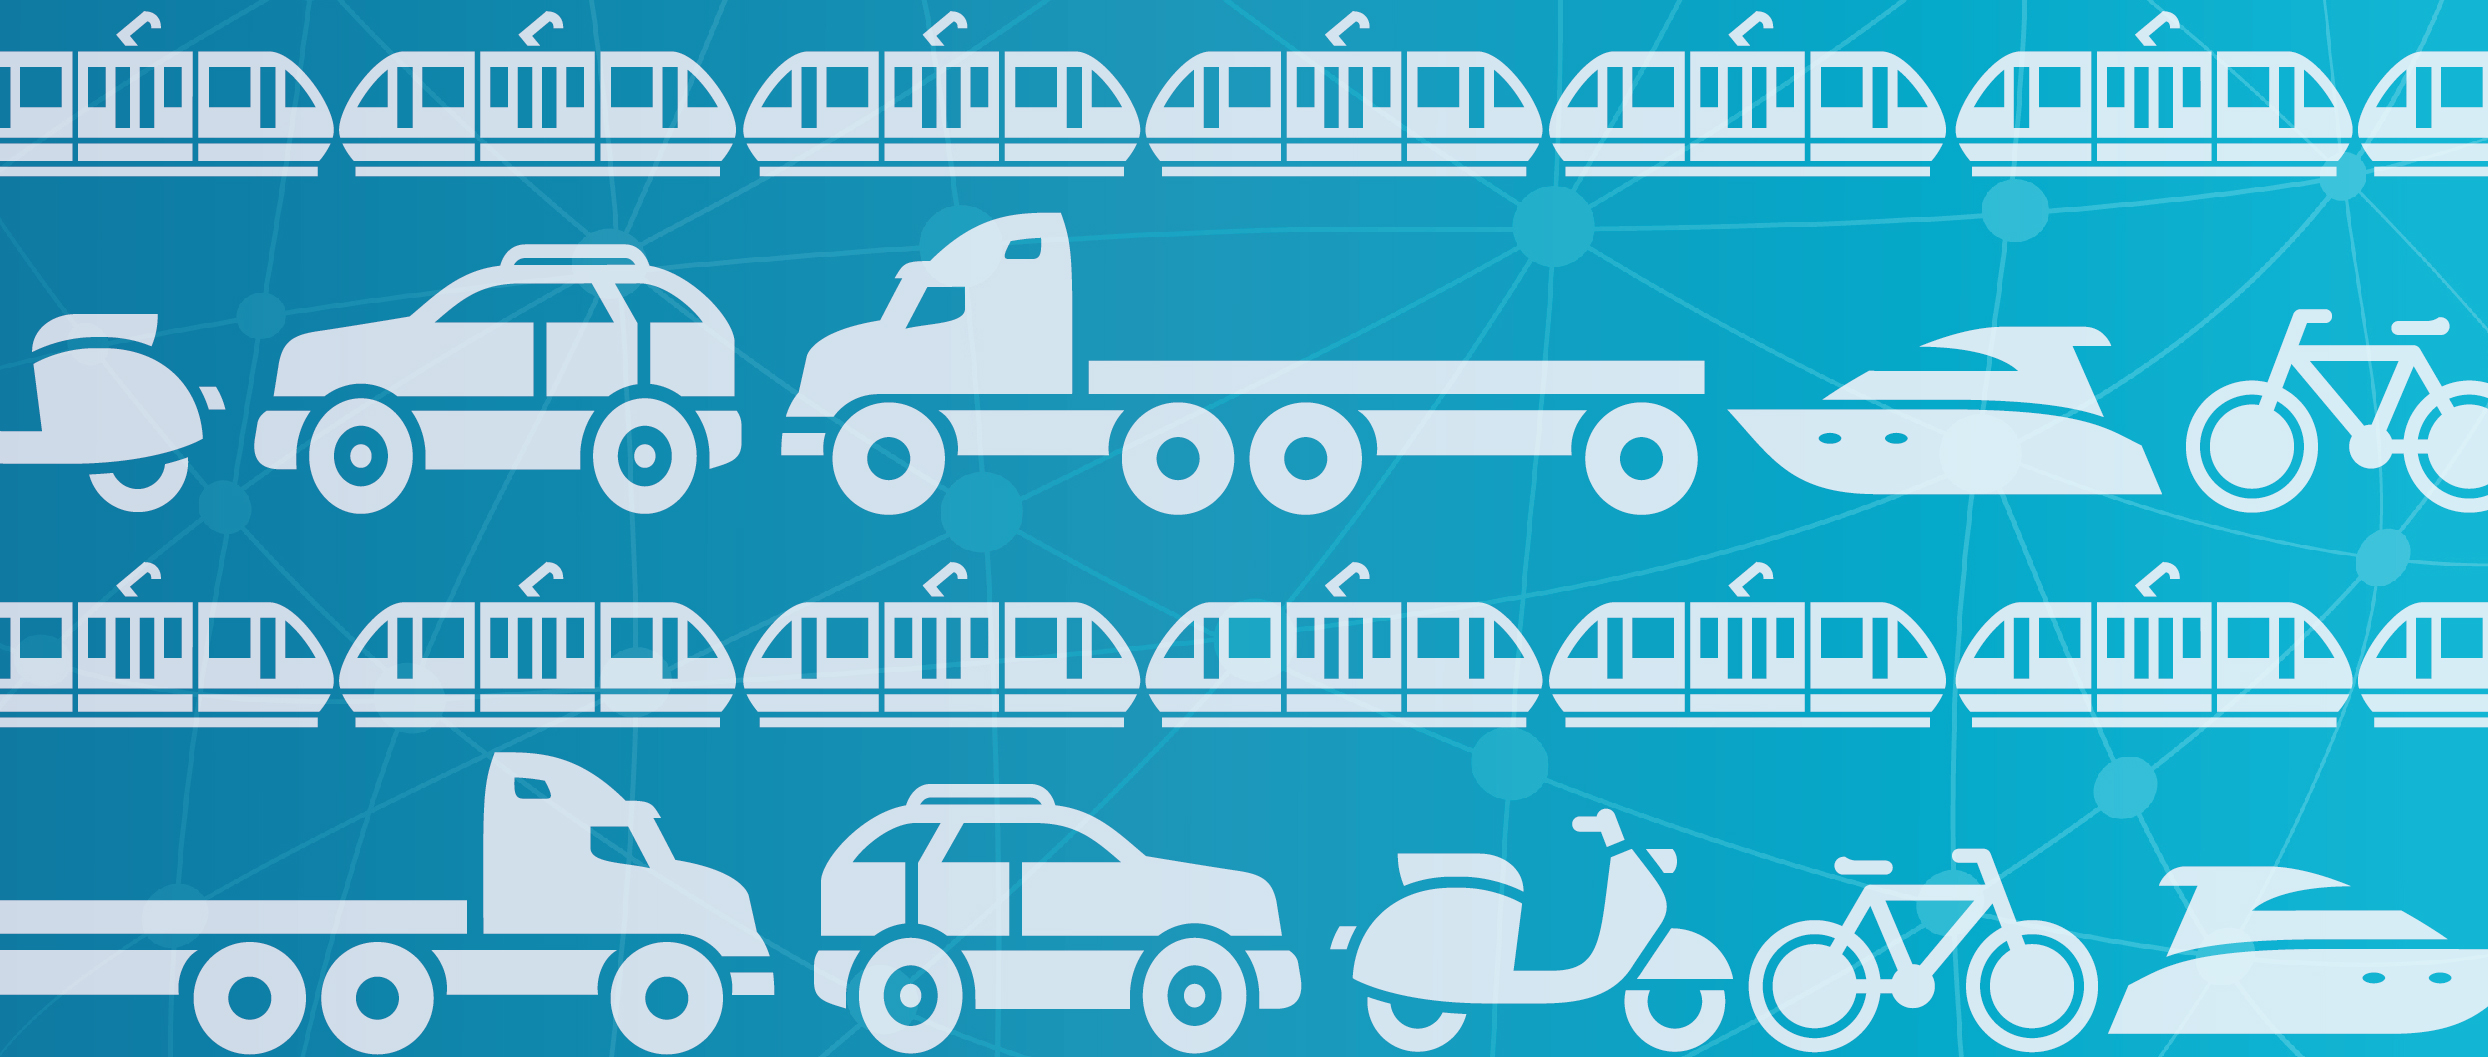 Rev Your Engines! OurCrowd's Transportation Tech Portfolio [Infographic]